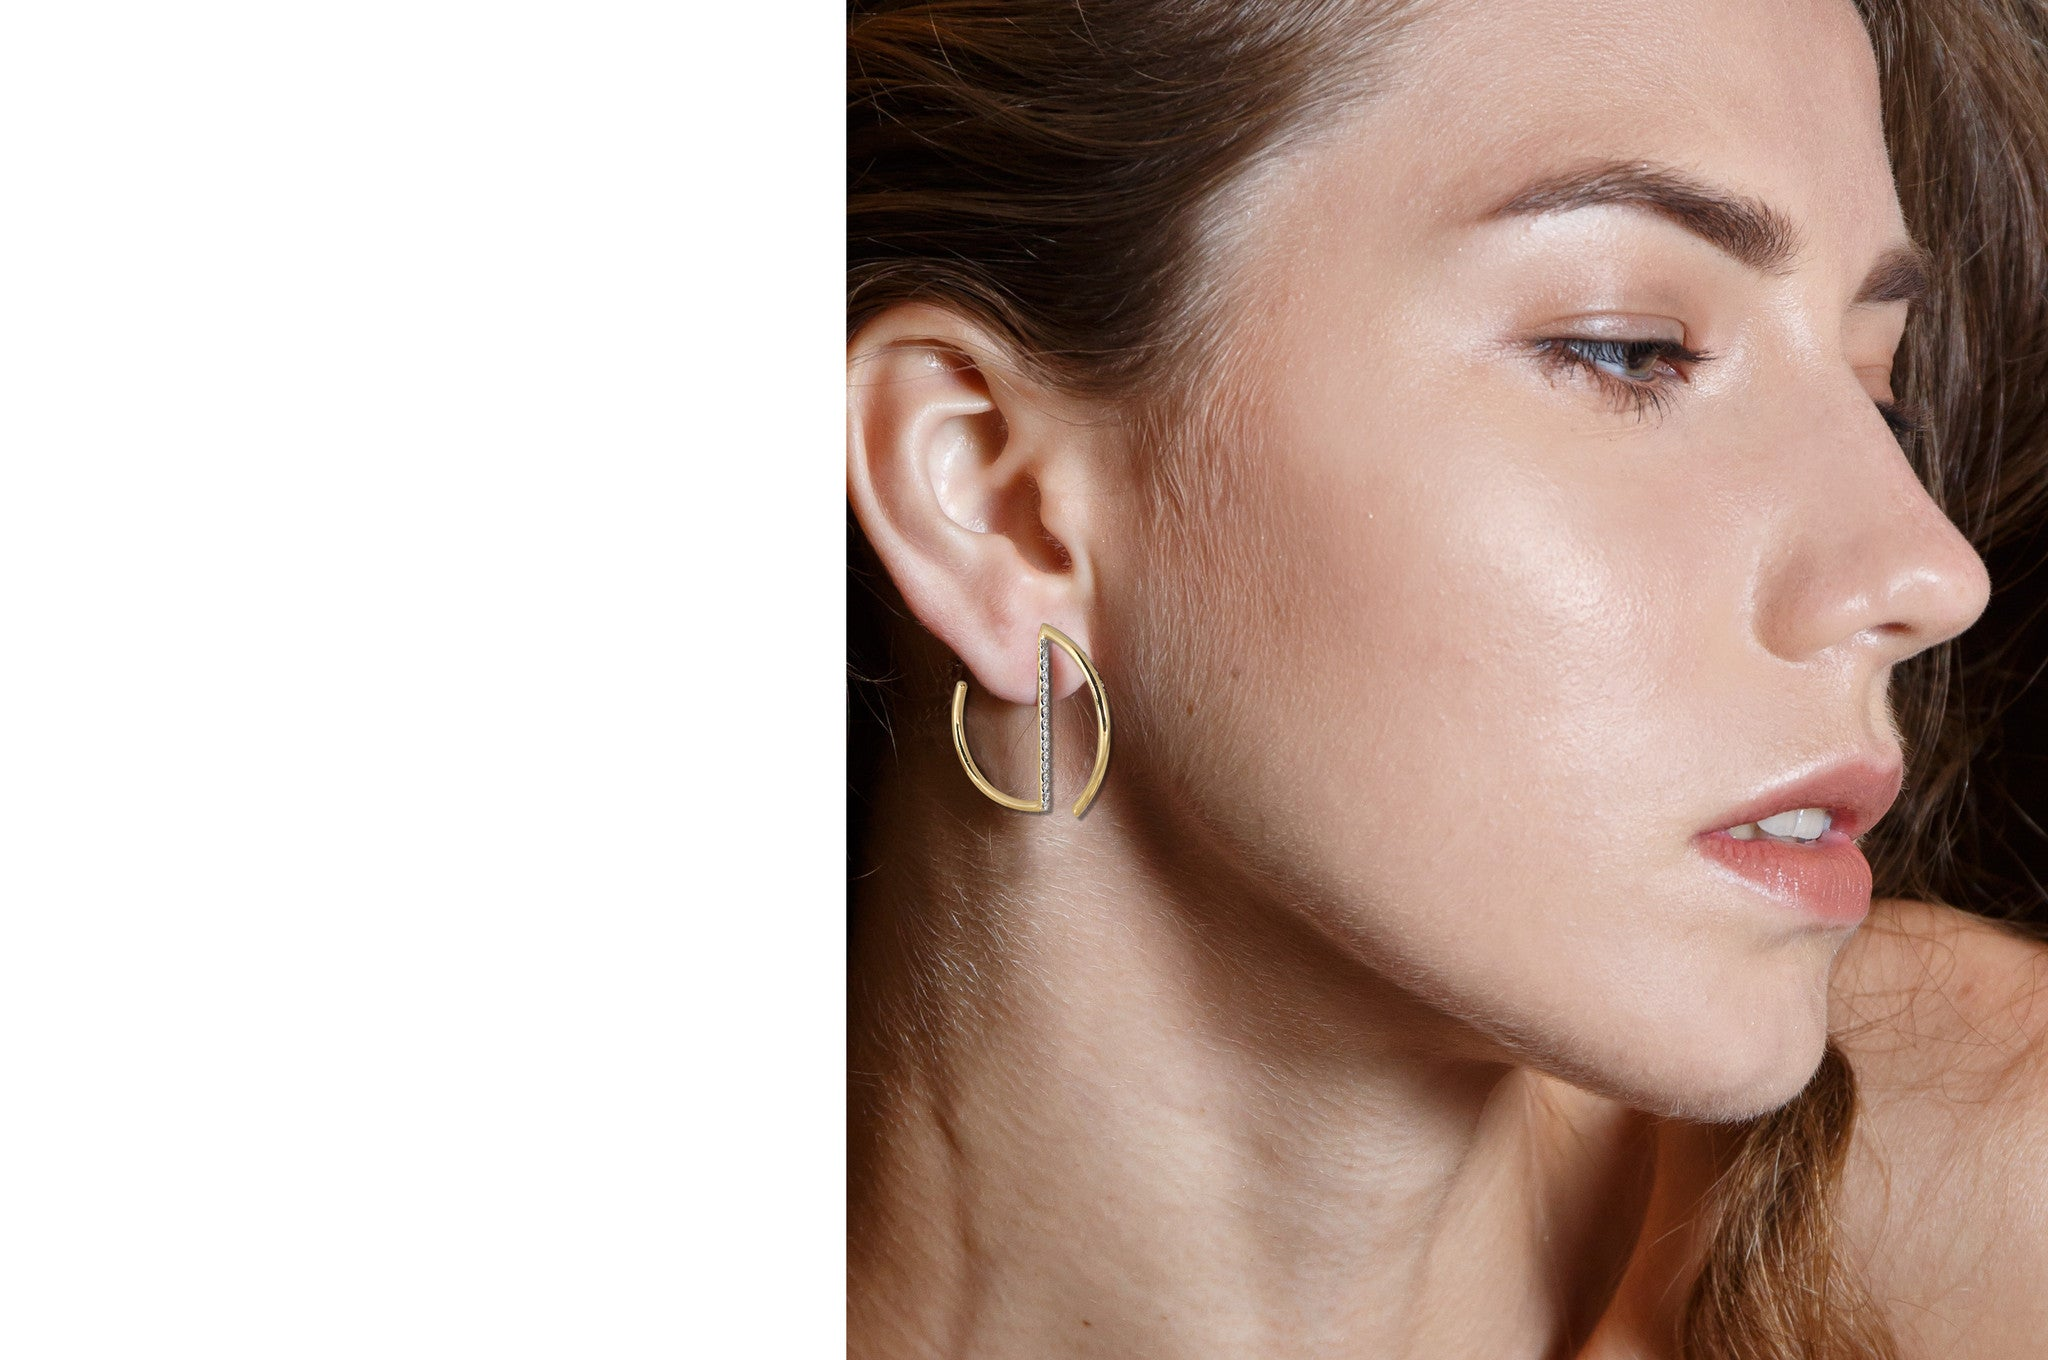 GeoArt Round Hoop Earrings [as seen on Olivia Culpo]